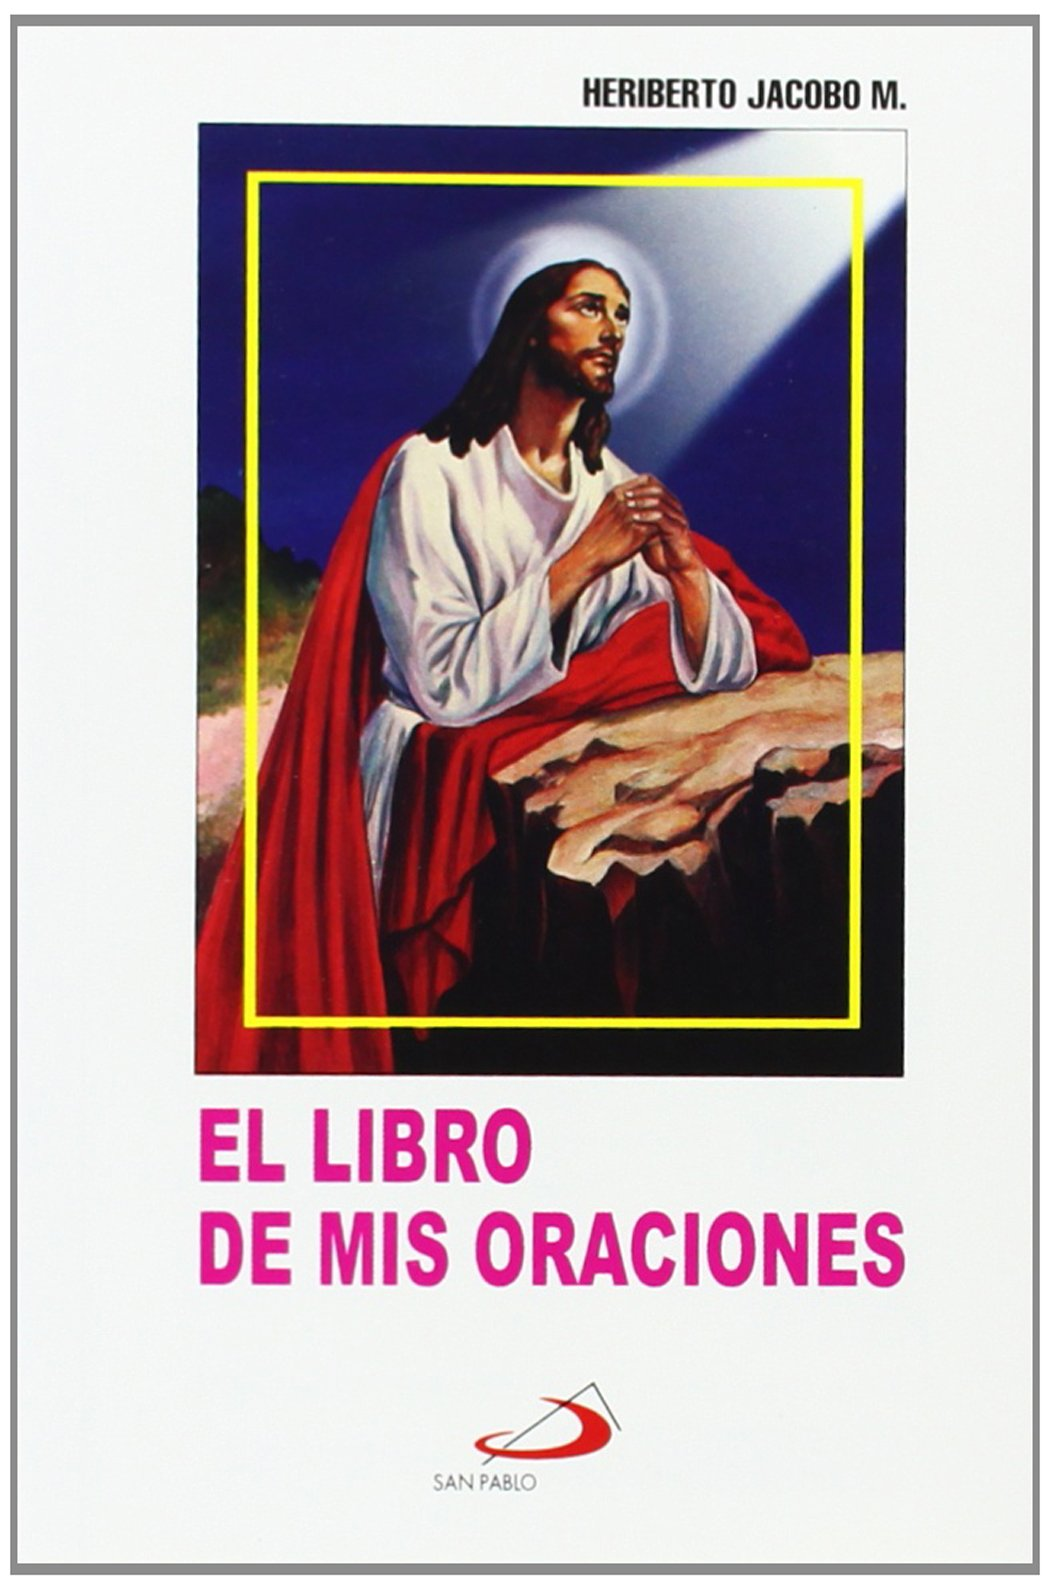 El Libro De Mis Oraciones: Edition (Spanish Edition) by Heriberto Jacobo